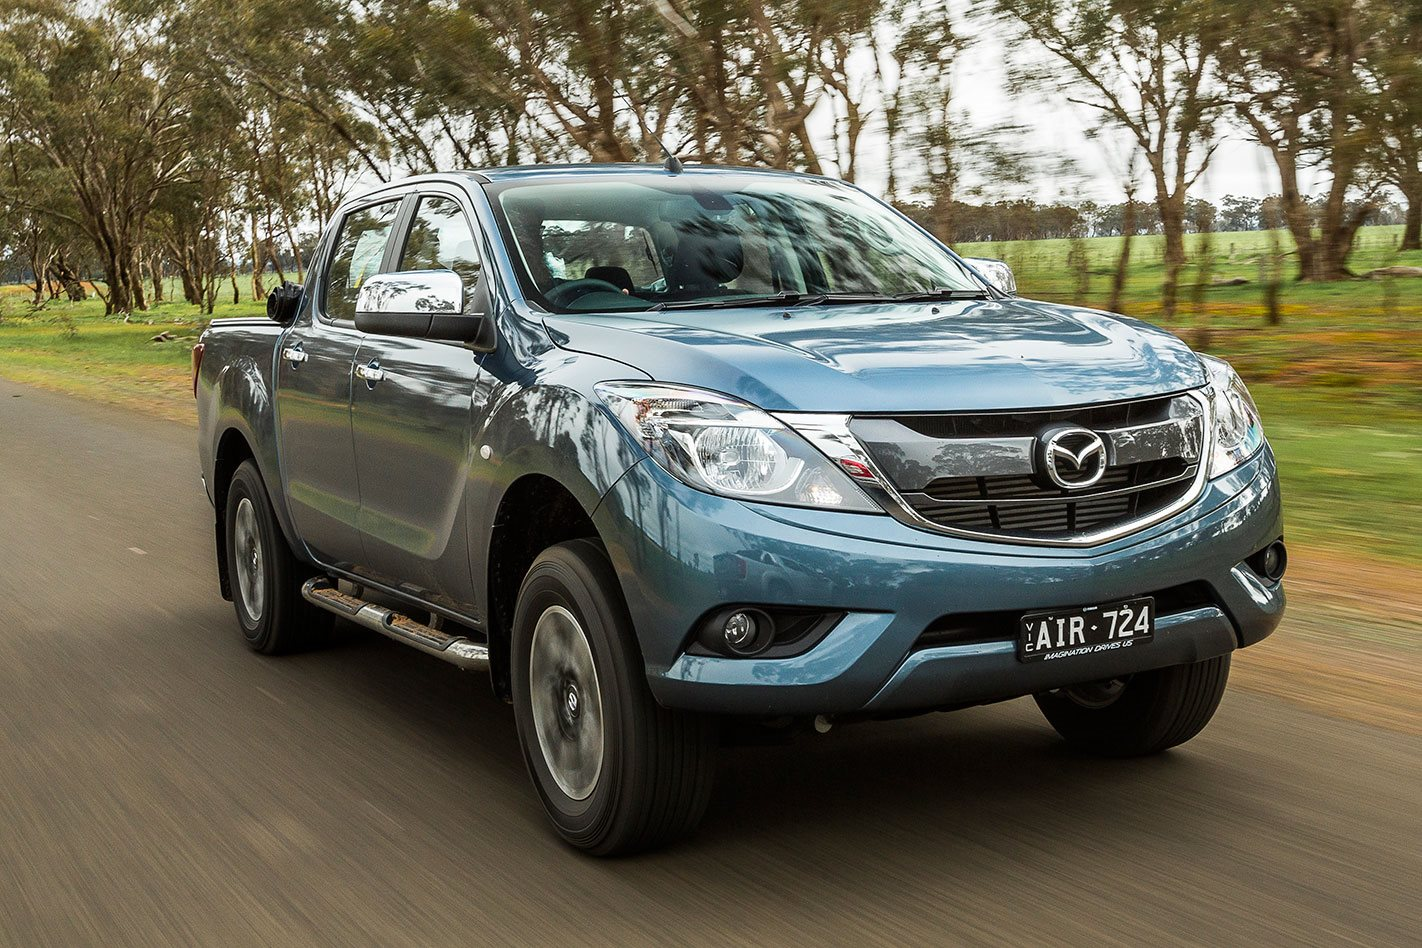 mazda bt 50 review price features and specifications whichcar. Black Bedroom Furniture Sets. Home Design Ideas